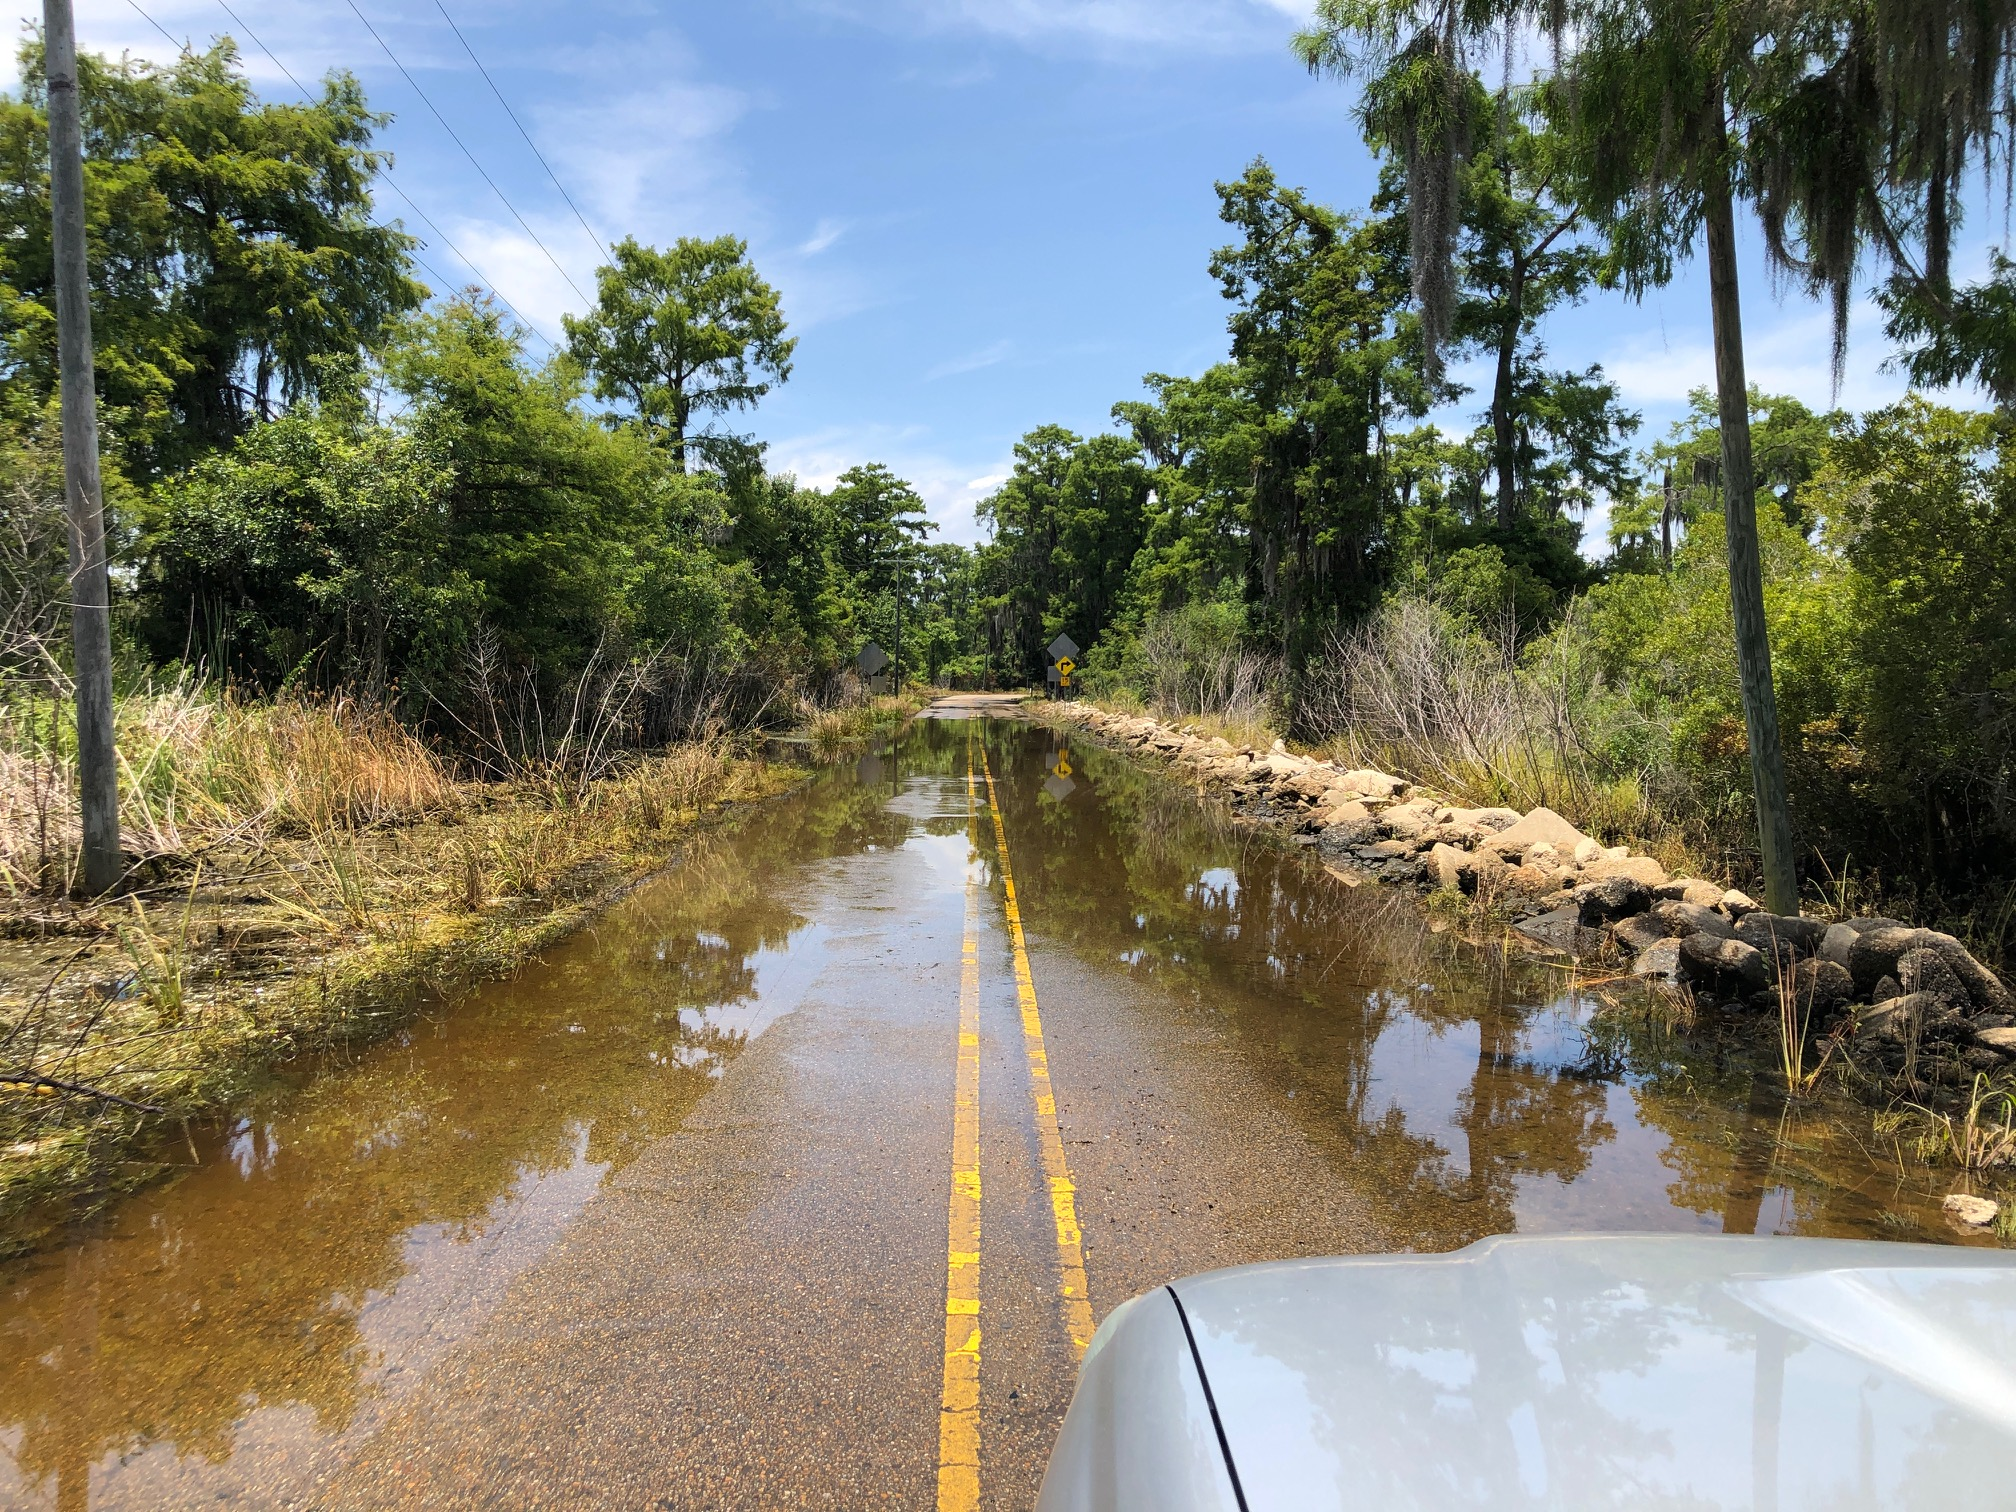 Flooding of the bayou's in Lousiana